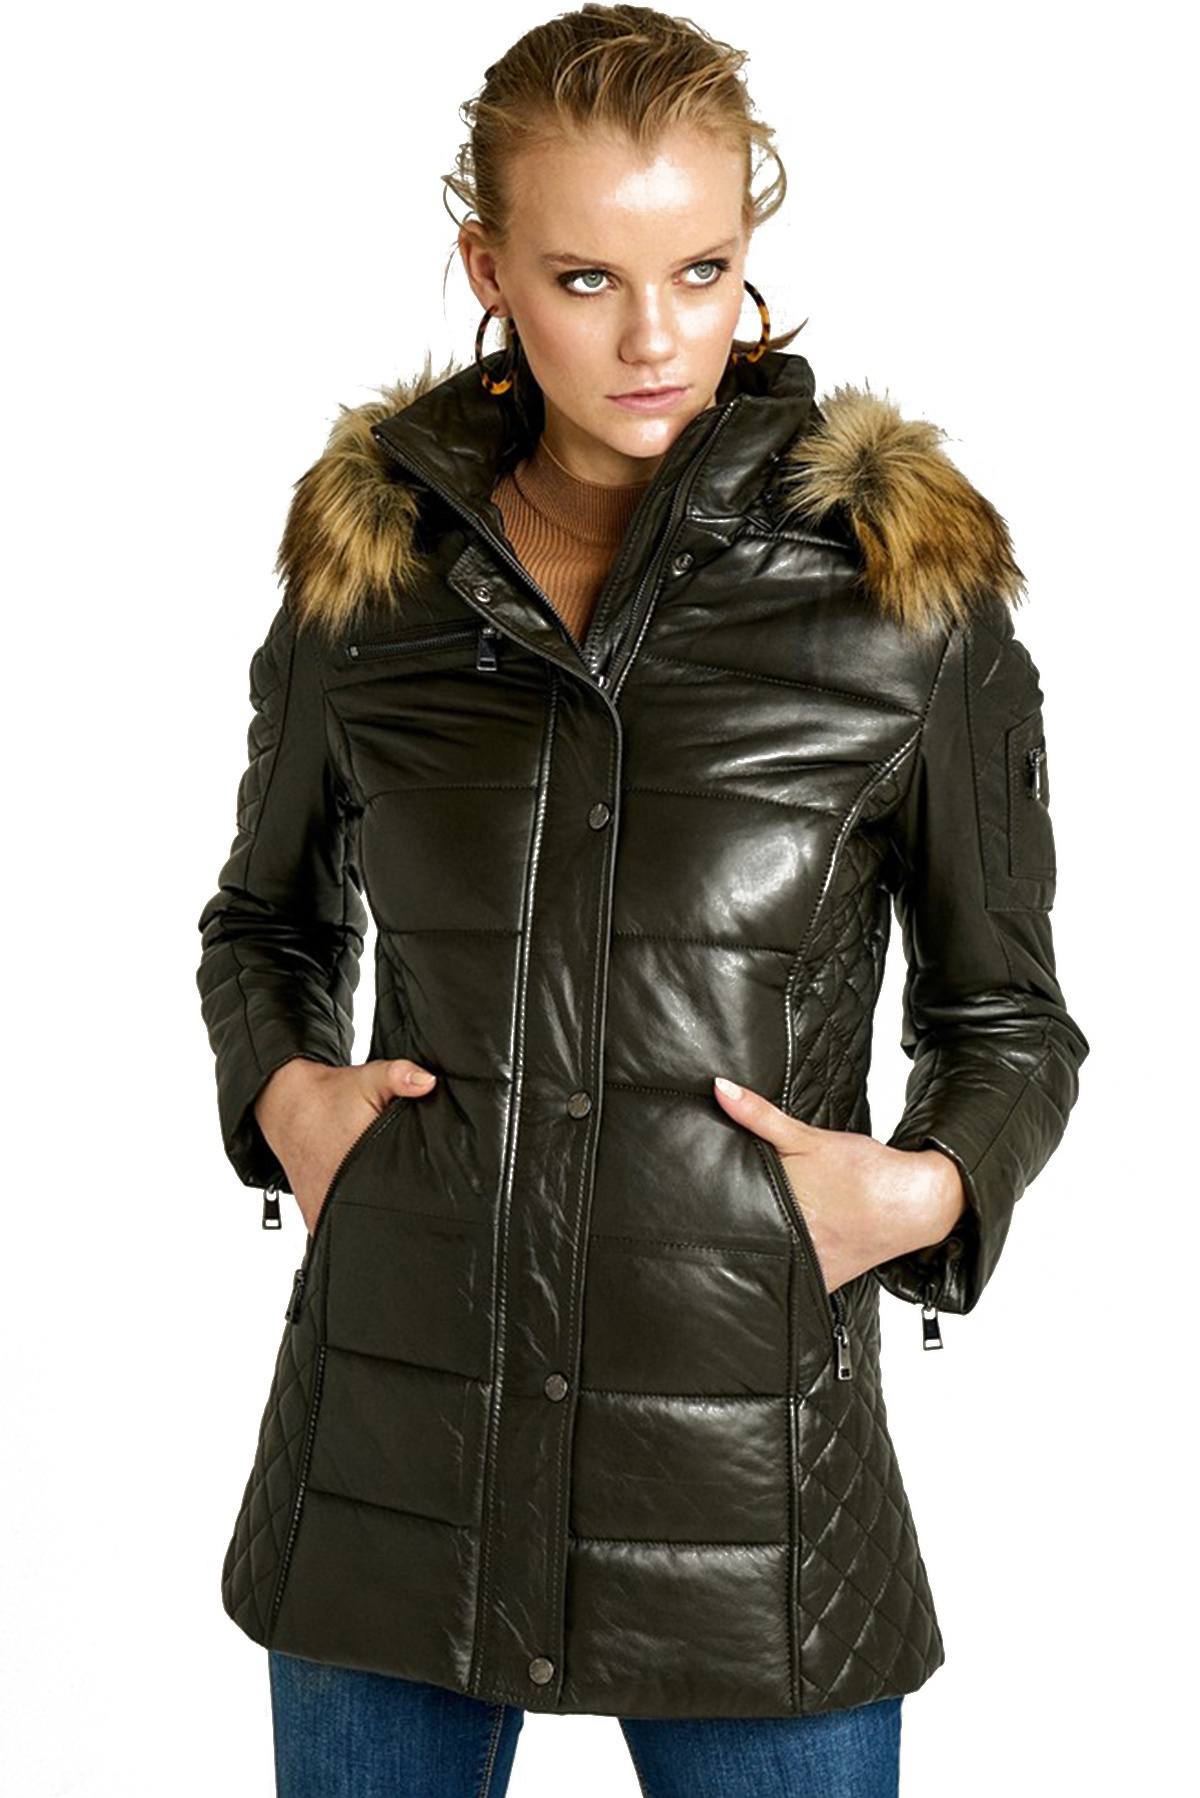 where is the best place to buy a leather jacket